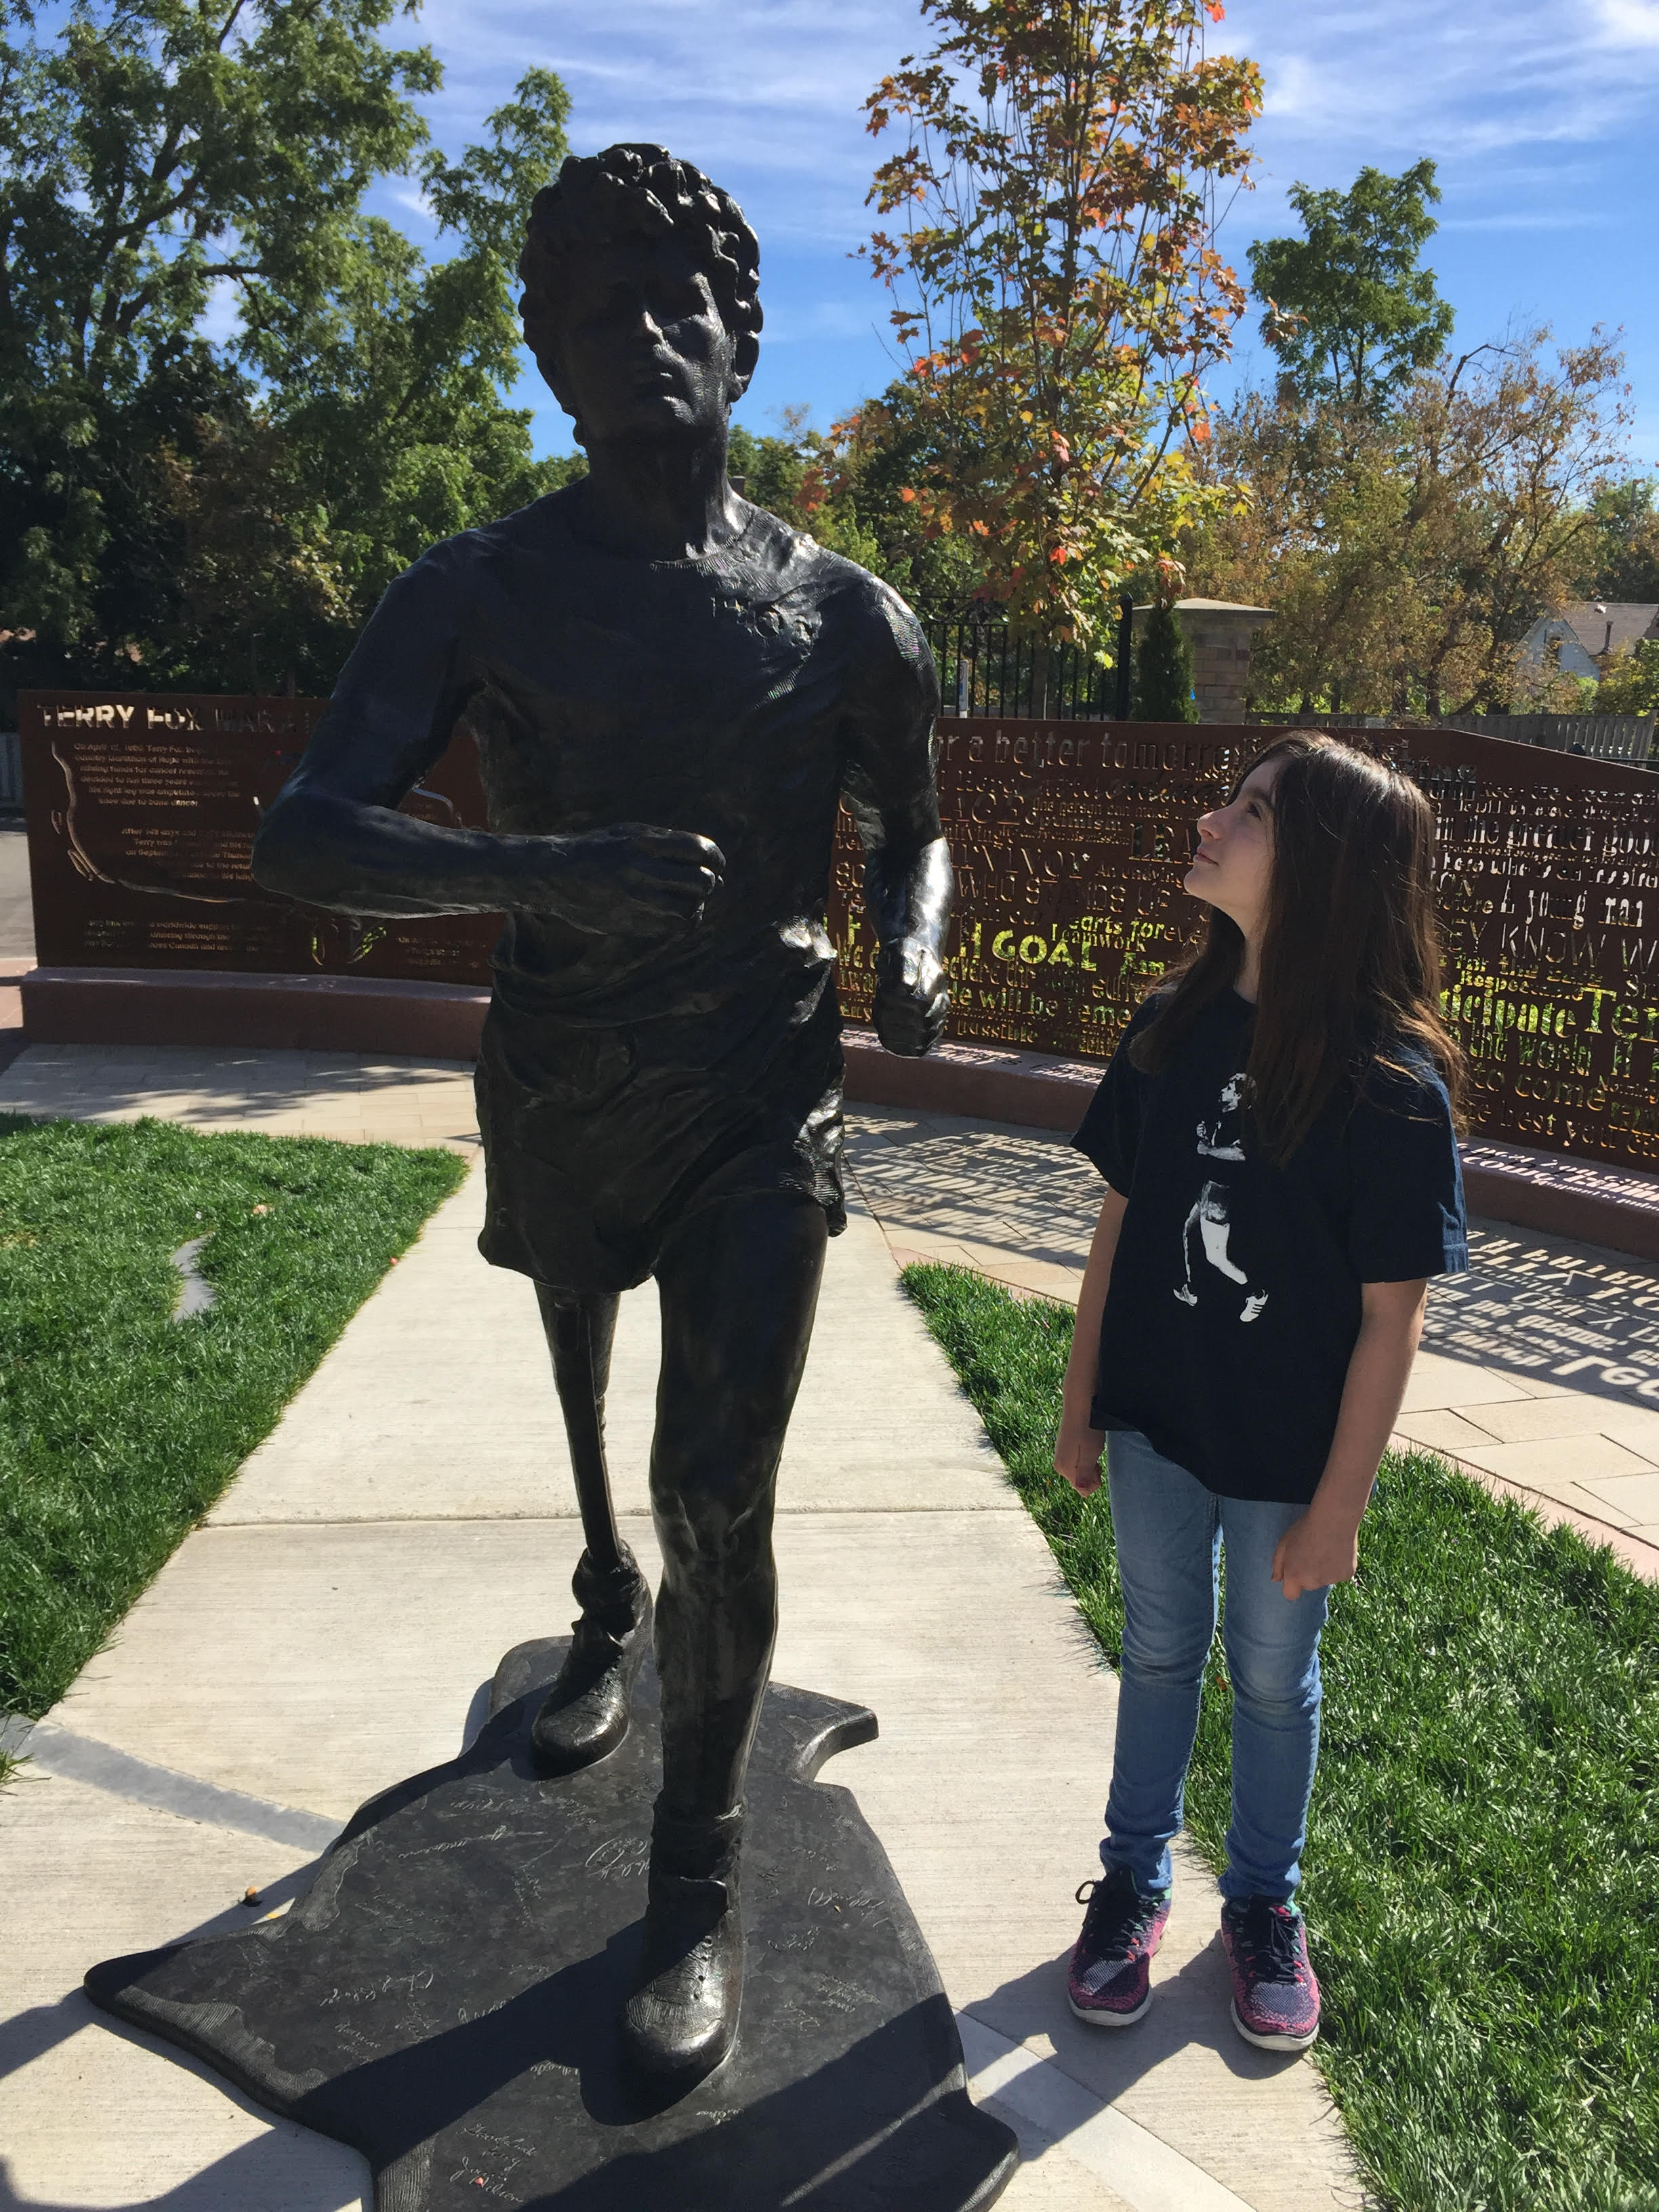 terry fox s legacy proves one person can make a difference 2015 09 20 1442766479 9356834 113 jpg